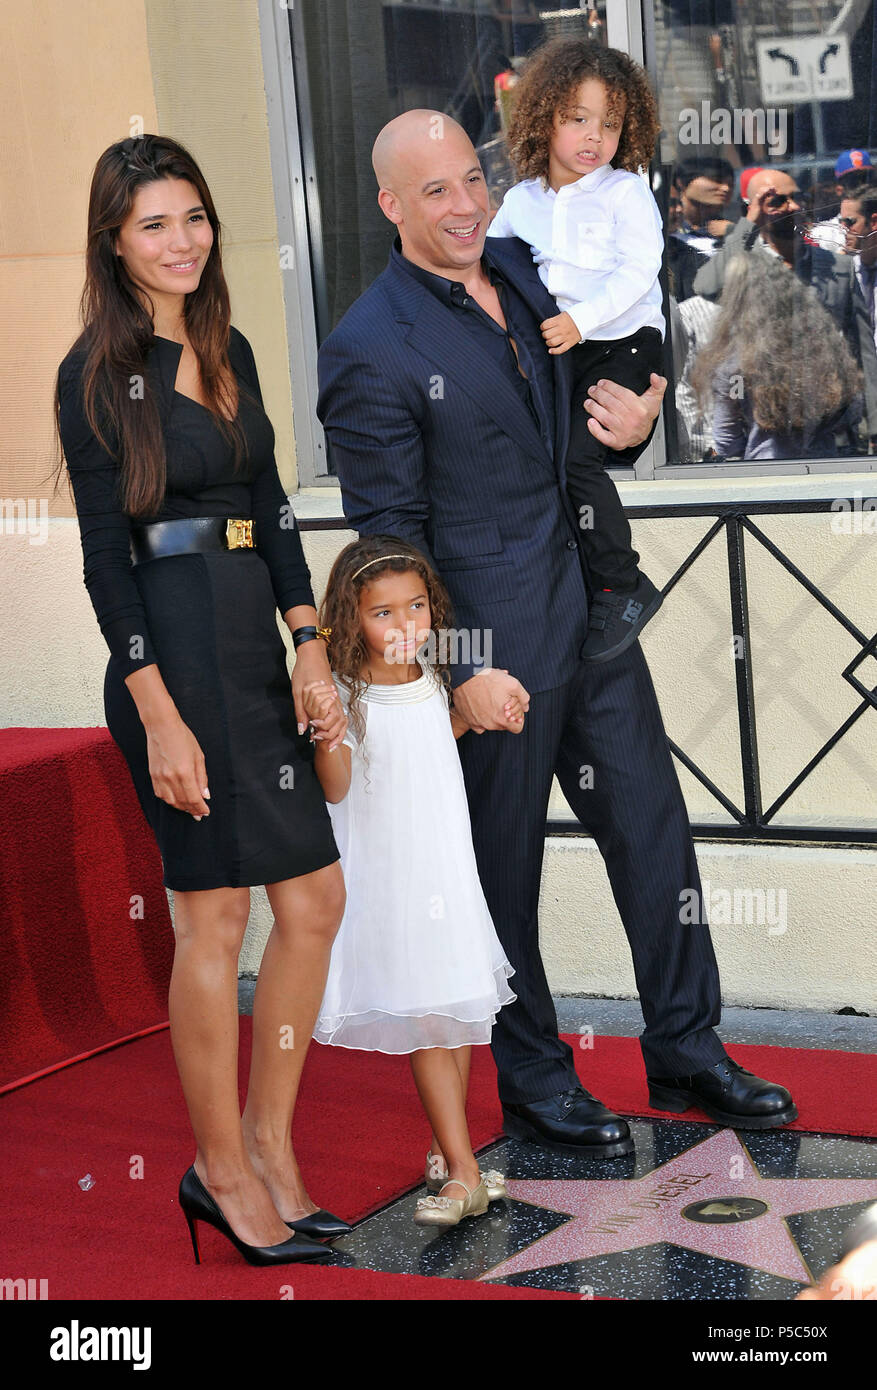 Vin Diesel And Wife High Resolution Stock Photography And Images Alamy